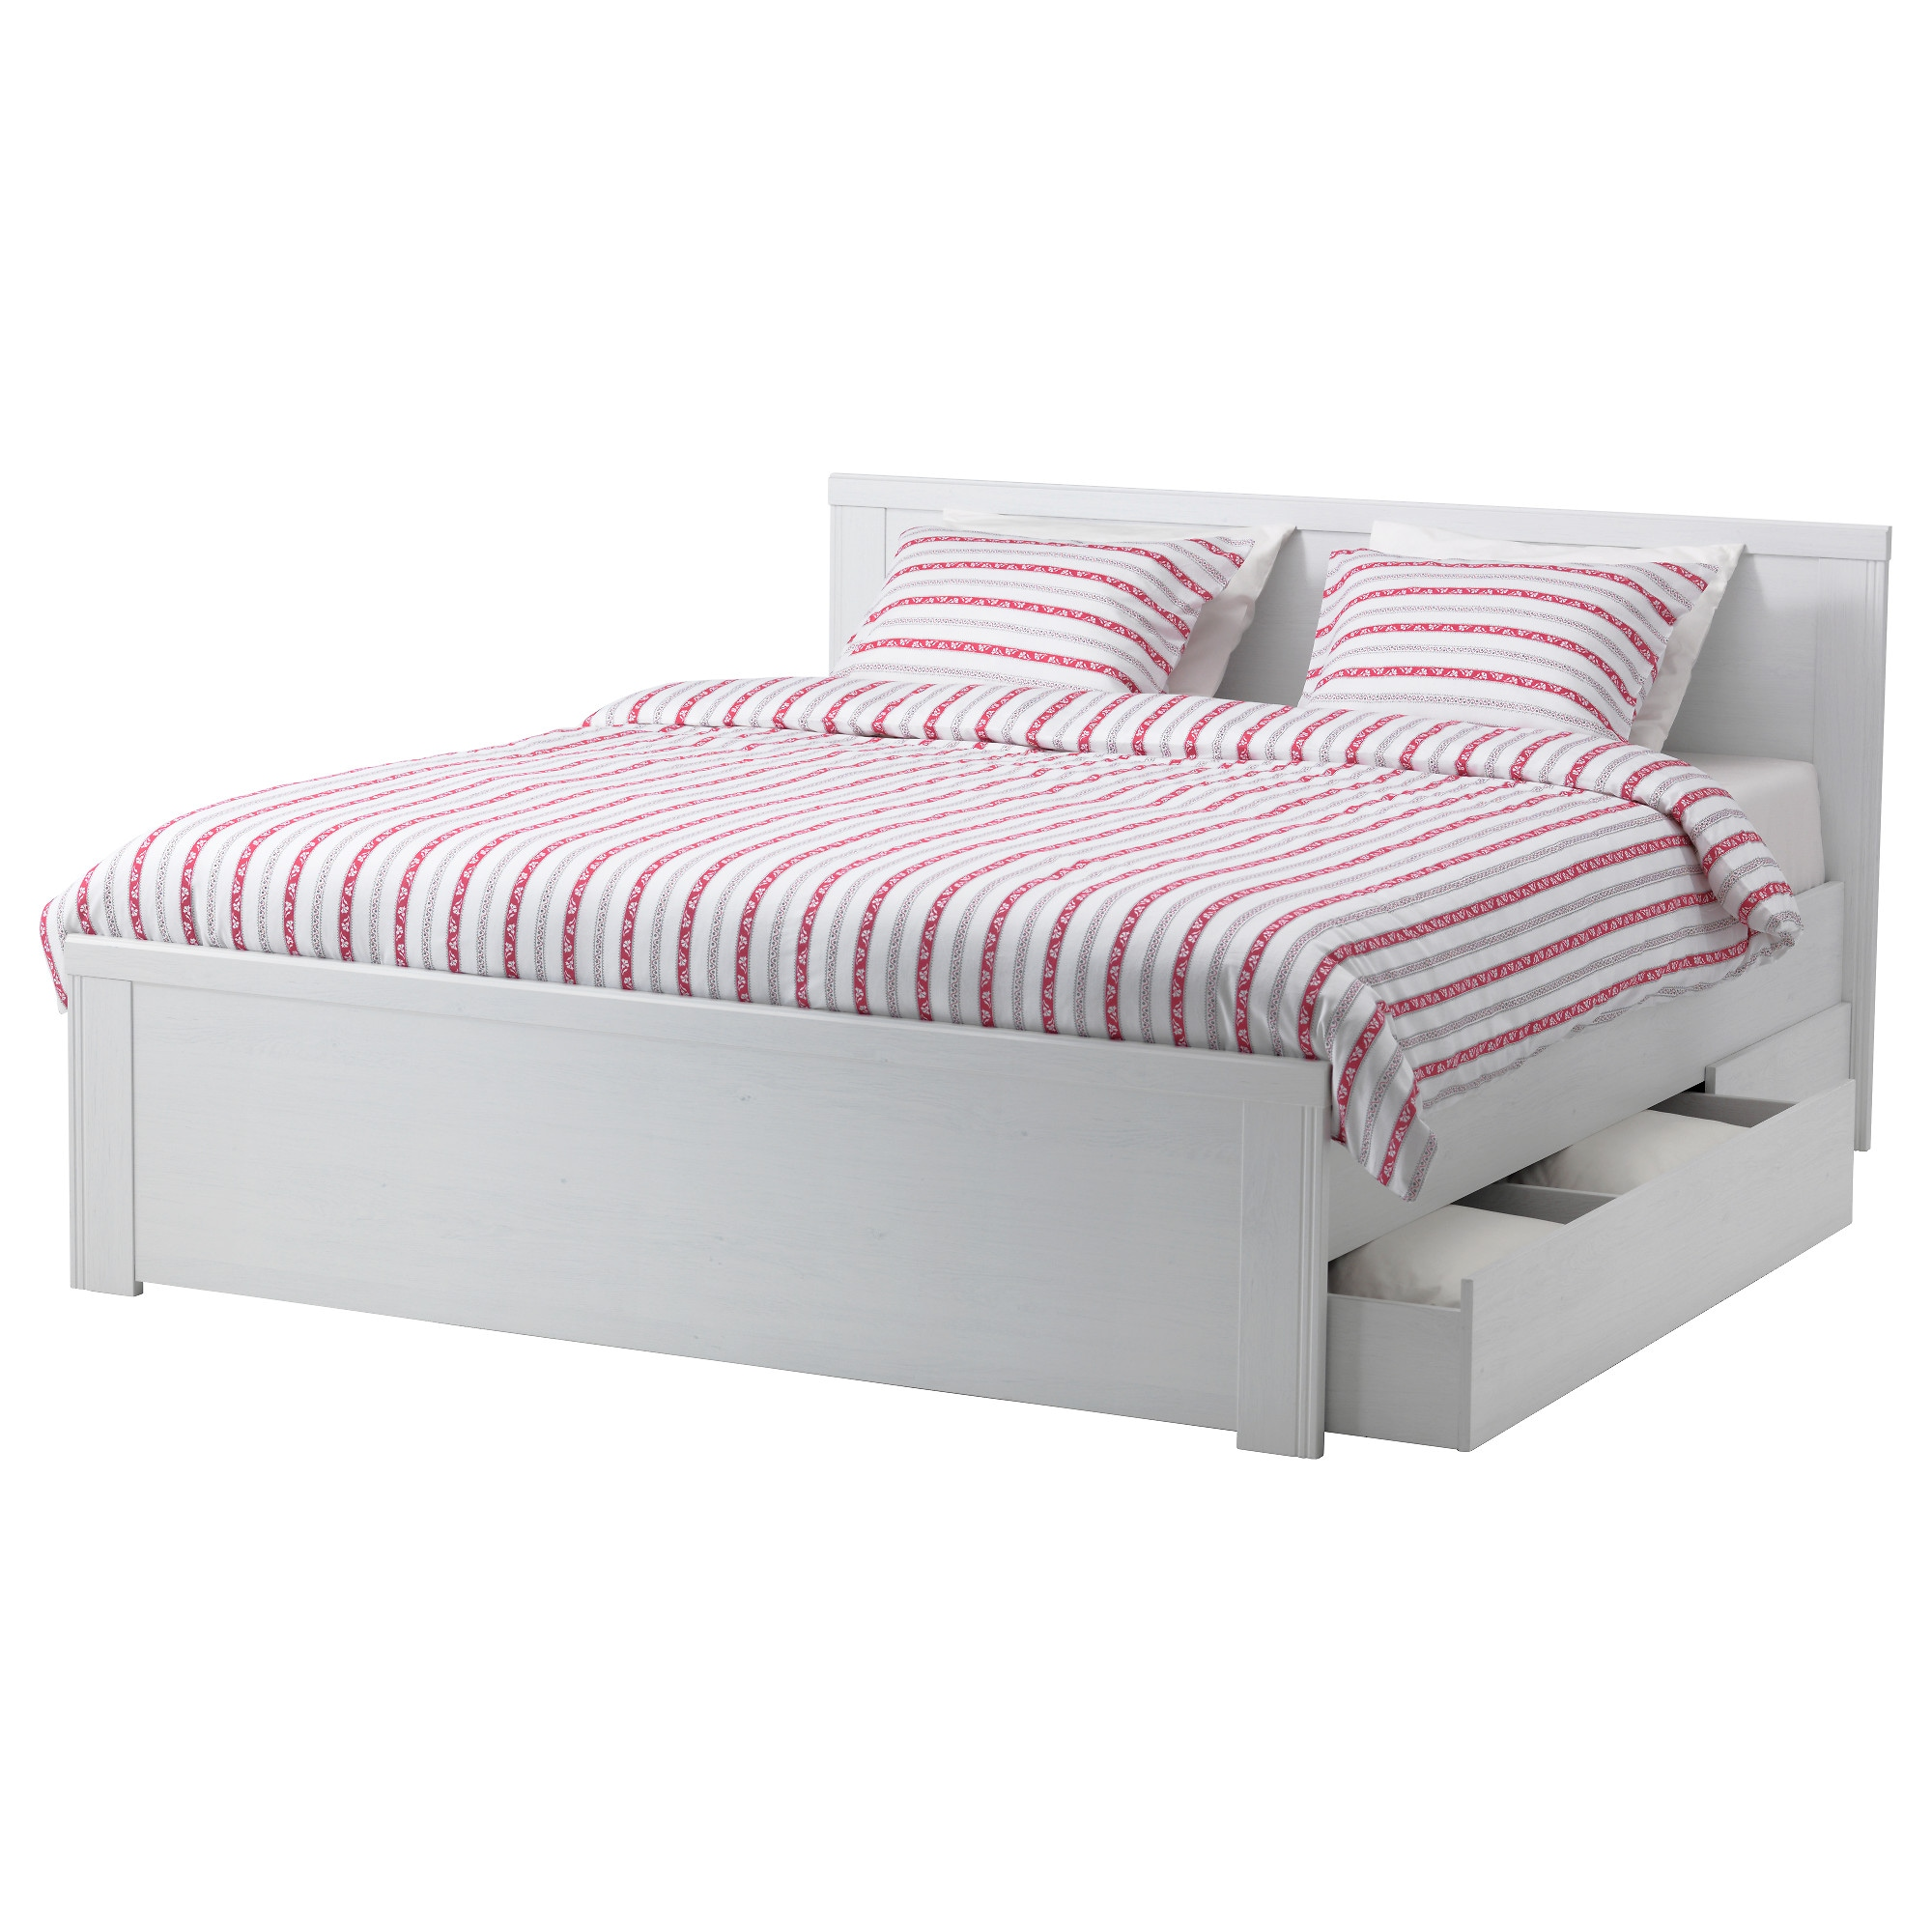 Ikea Nursery Ideas Furniture ~ Doppelbetten Französische Betten U0026amp King Size IKEA